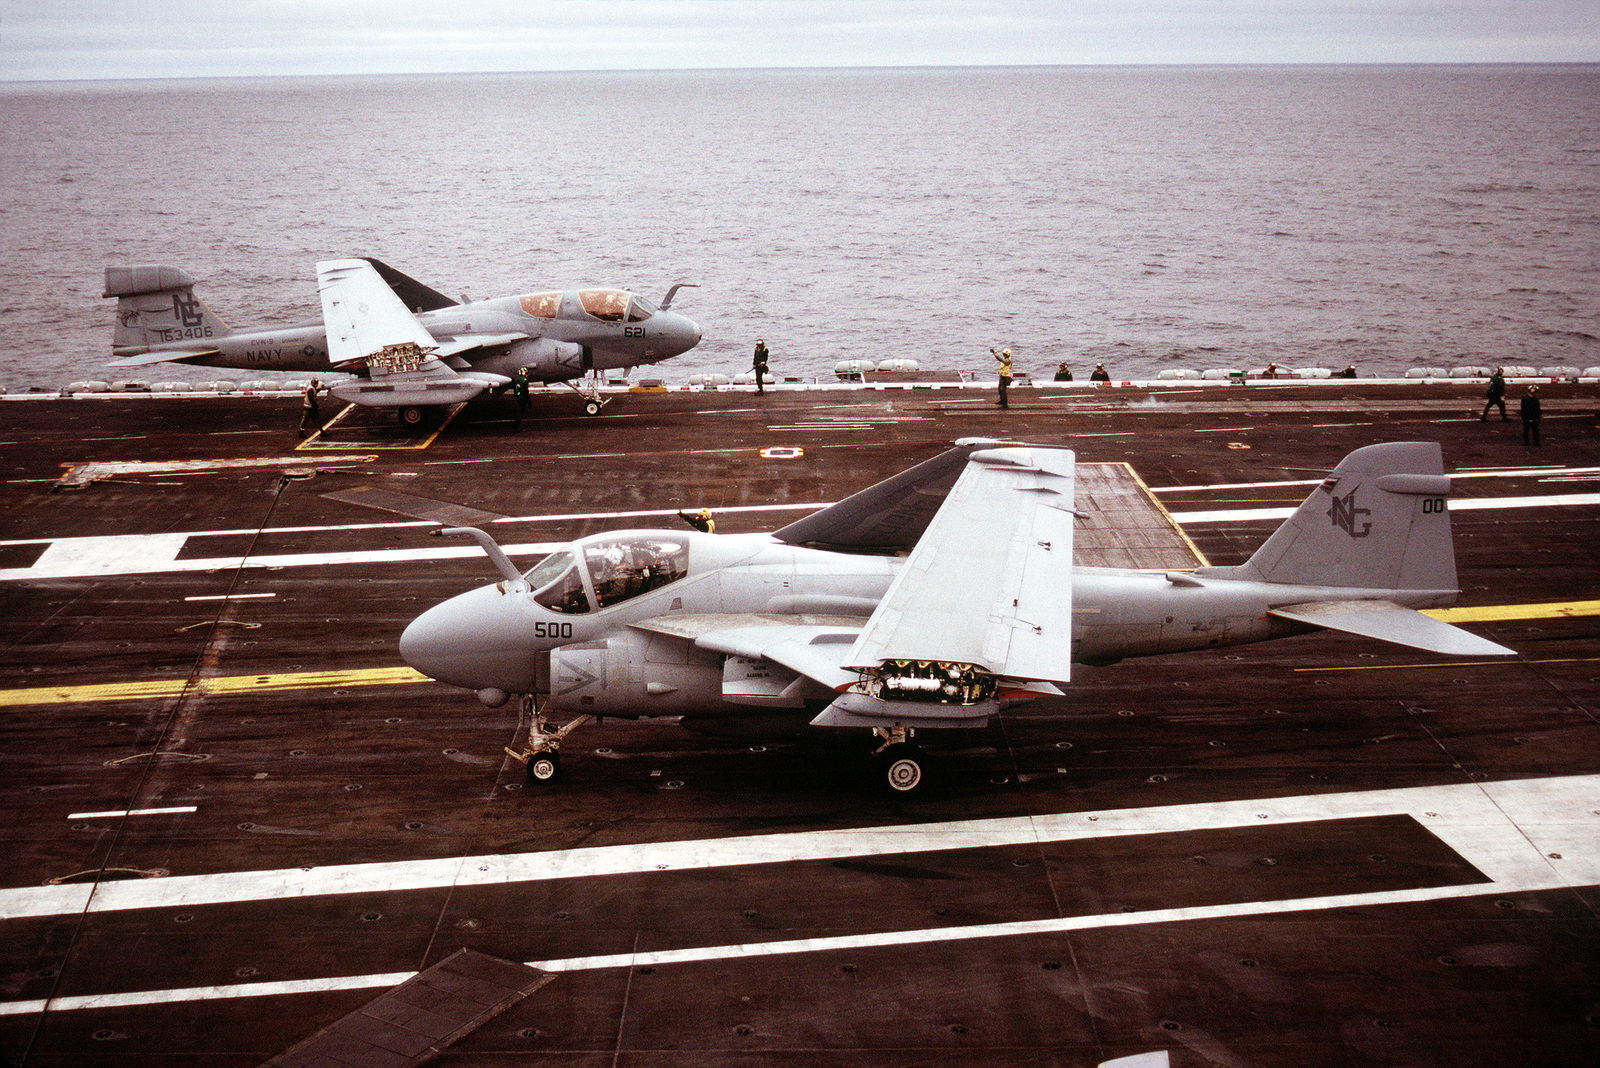 An A-6E Intruder aircraft of Attack Squadron 165 (VA-165) taxis on the flight deck, foreground, as an EA-6B Prowler aircraft, background, of Tactical Electronic Warfare Squadron 138 (VAQ-138) is prepared for launch during flight operations aboard the nuclear-powered aircraft carrier USS NIMITZ (CVN-68)